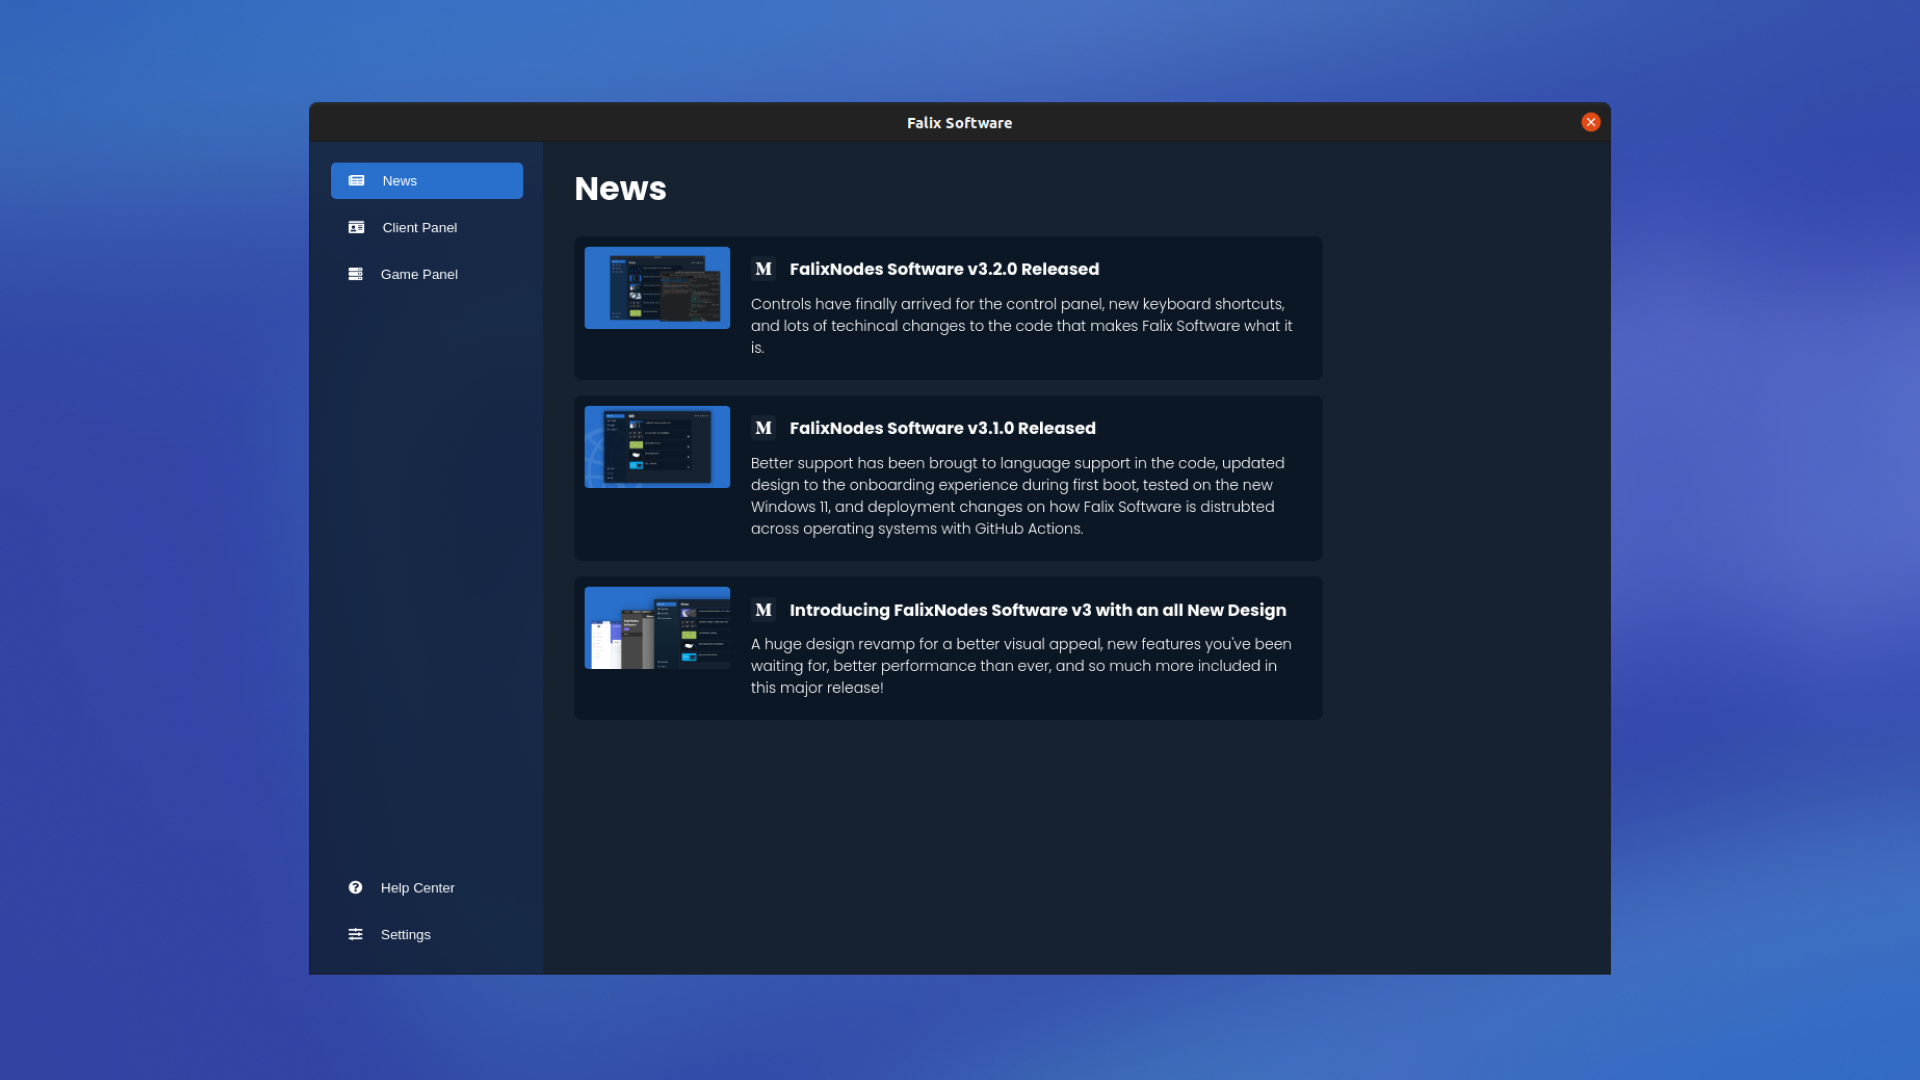 Preview of Falix Software with the News tab selected as default, showing three articles.